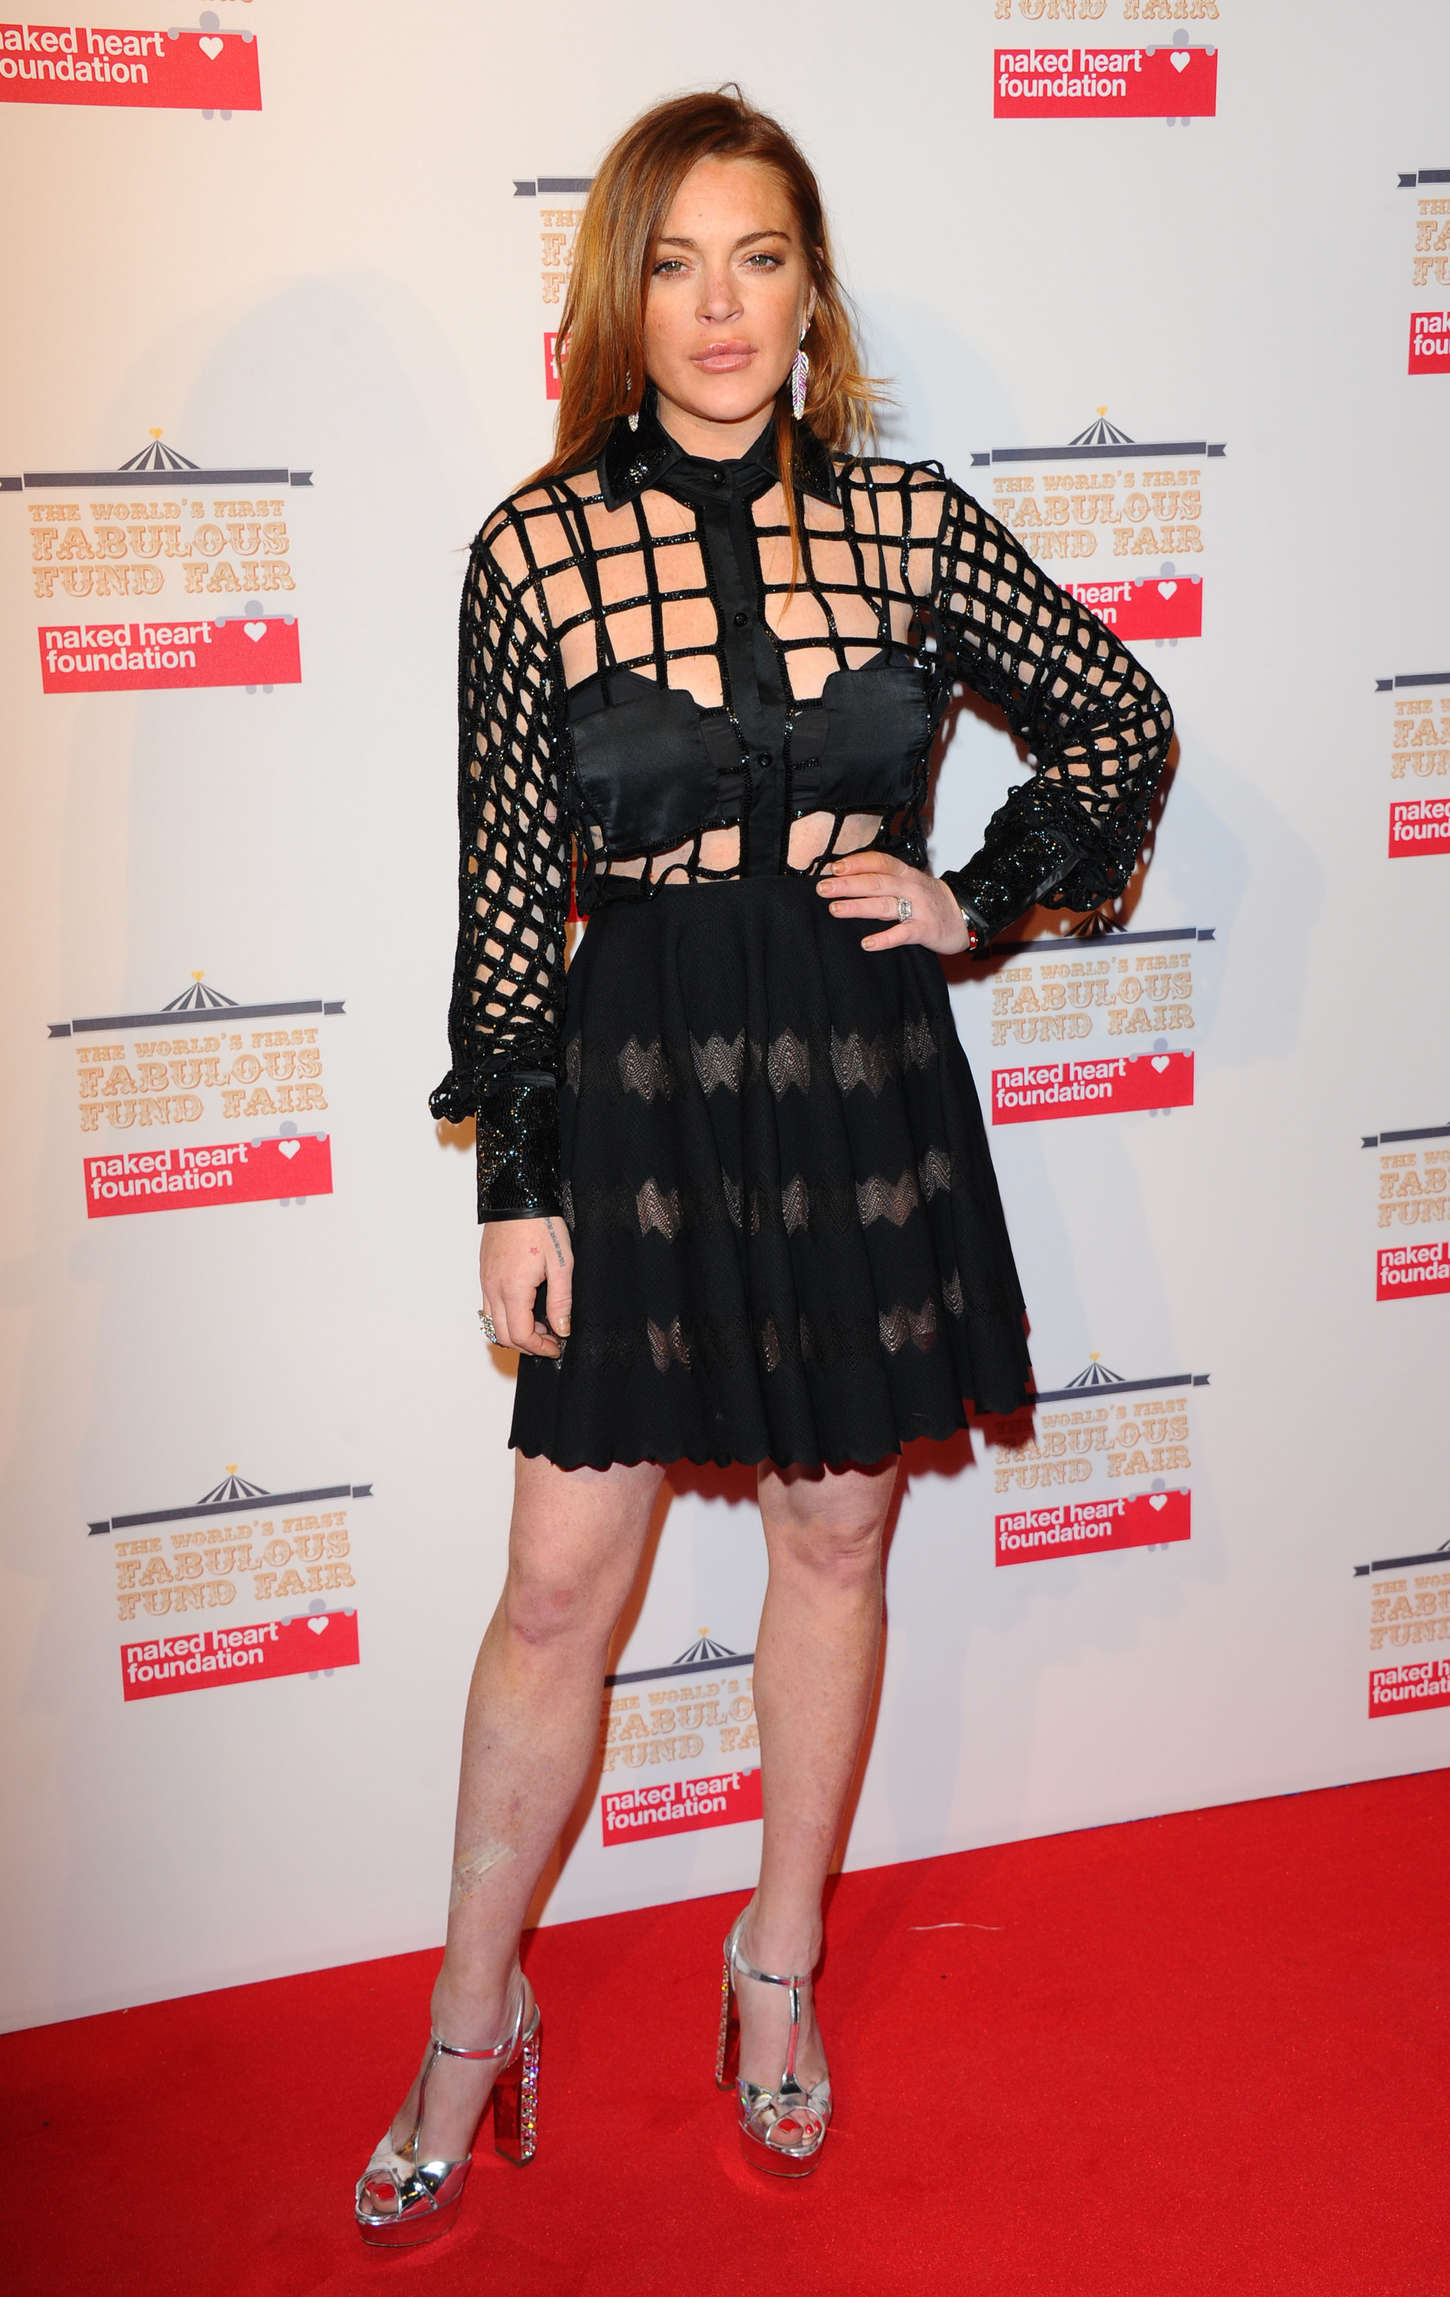 Lindsay Lohan - The World's First Fabulous Fund Fair 2015 in London